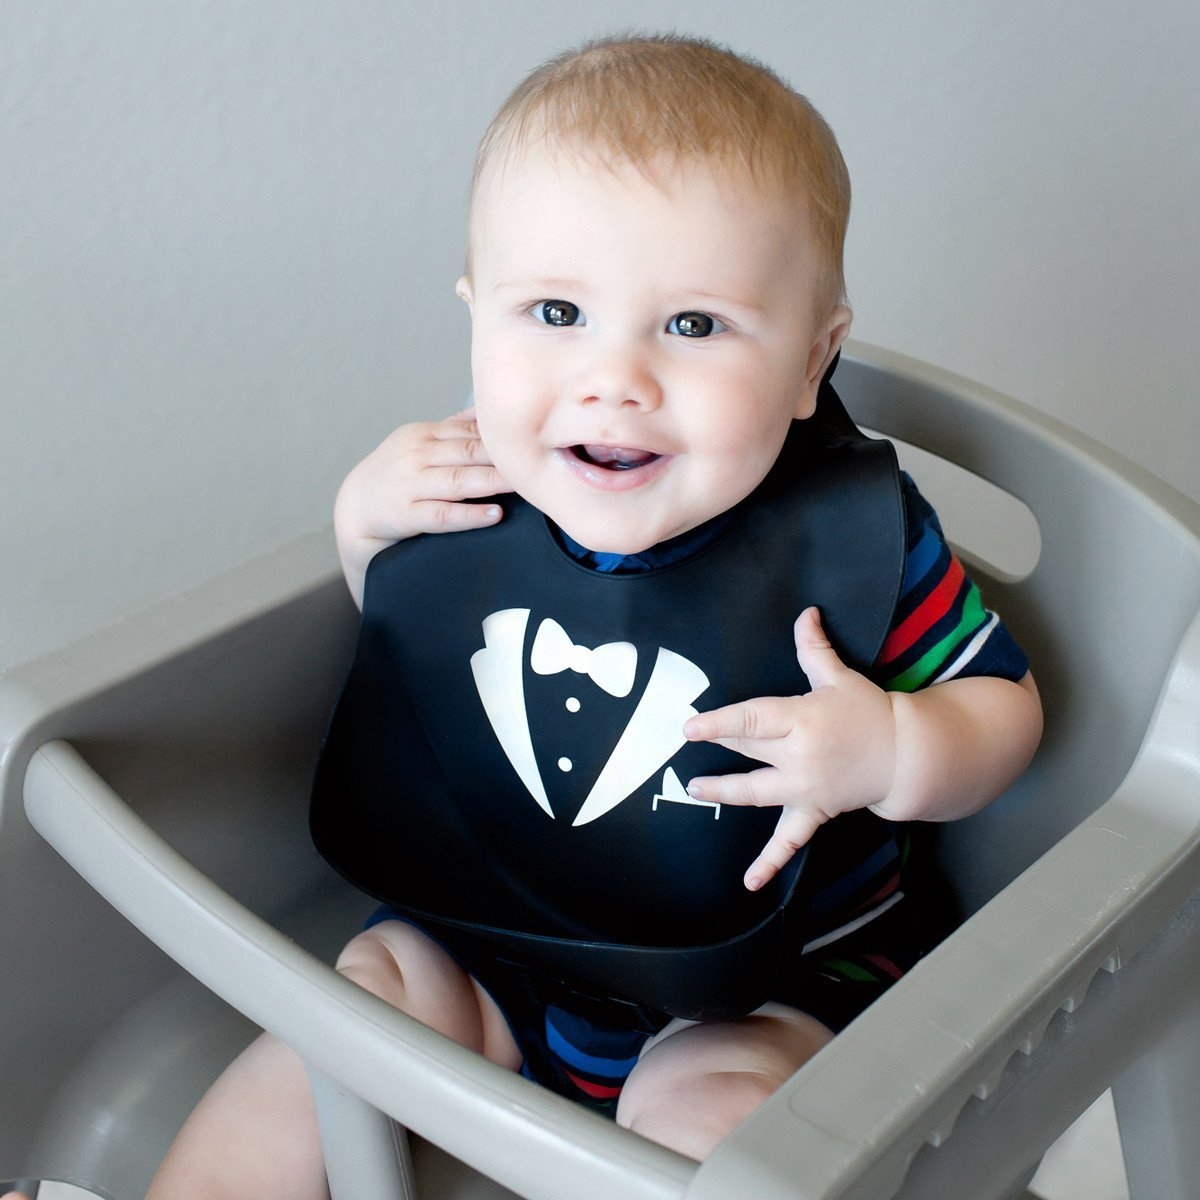 Kids N' Such Baby Bibs for Boys 3 Pack - 100% Food Grade Silicon - Waterproof with Food Catcher - Easy Clean - Anti Bacterial, Anti Microbial, Dishwasher Safe - Cute Designs for Your Baby Boy by Kids N' Such (Image #2)